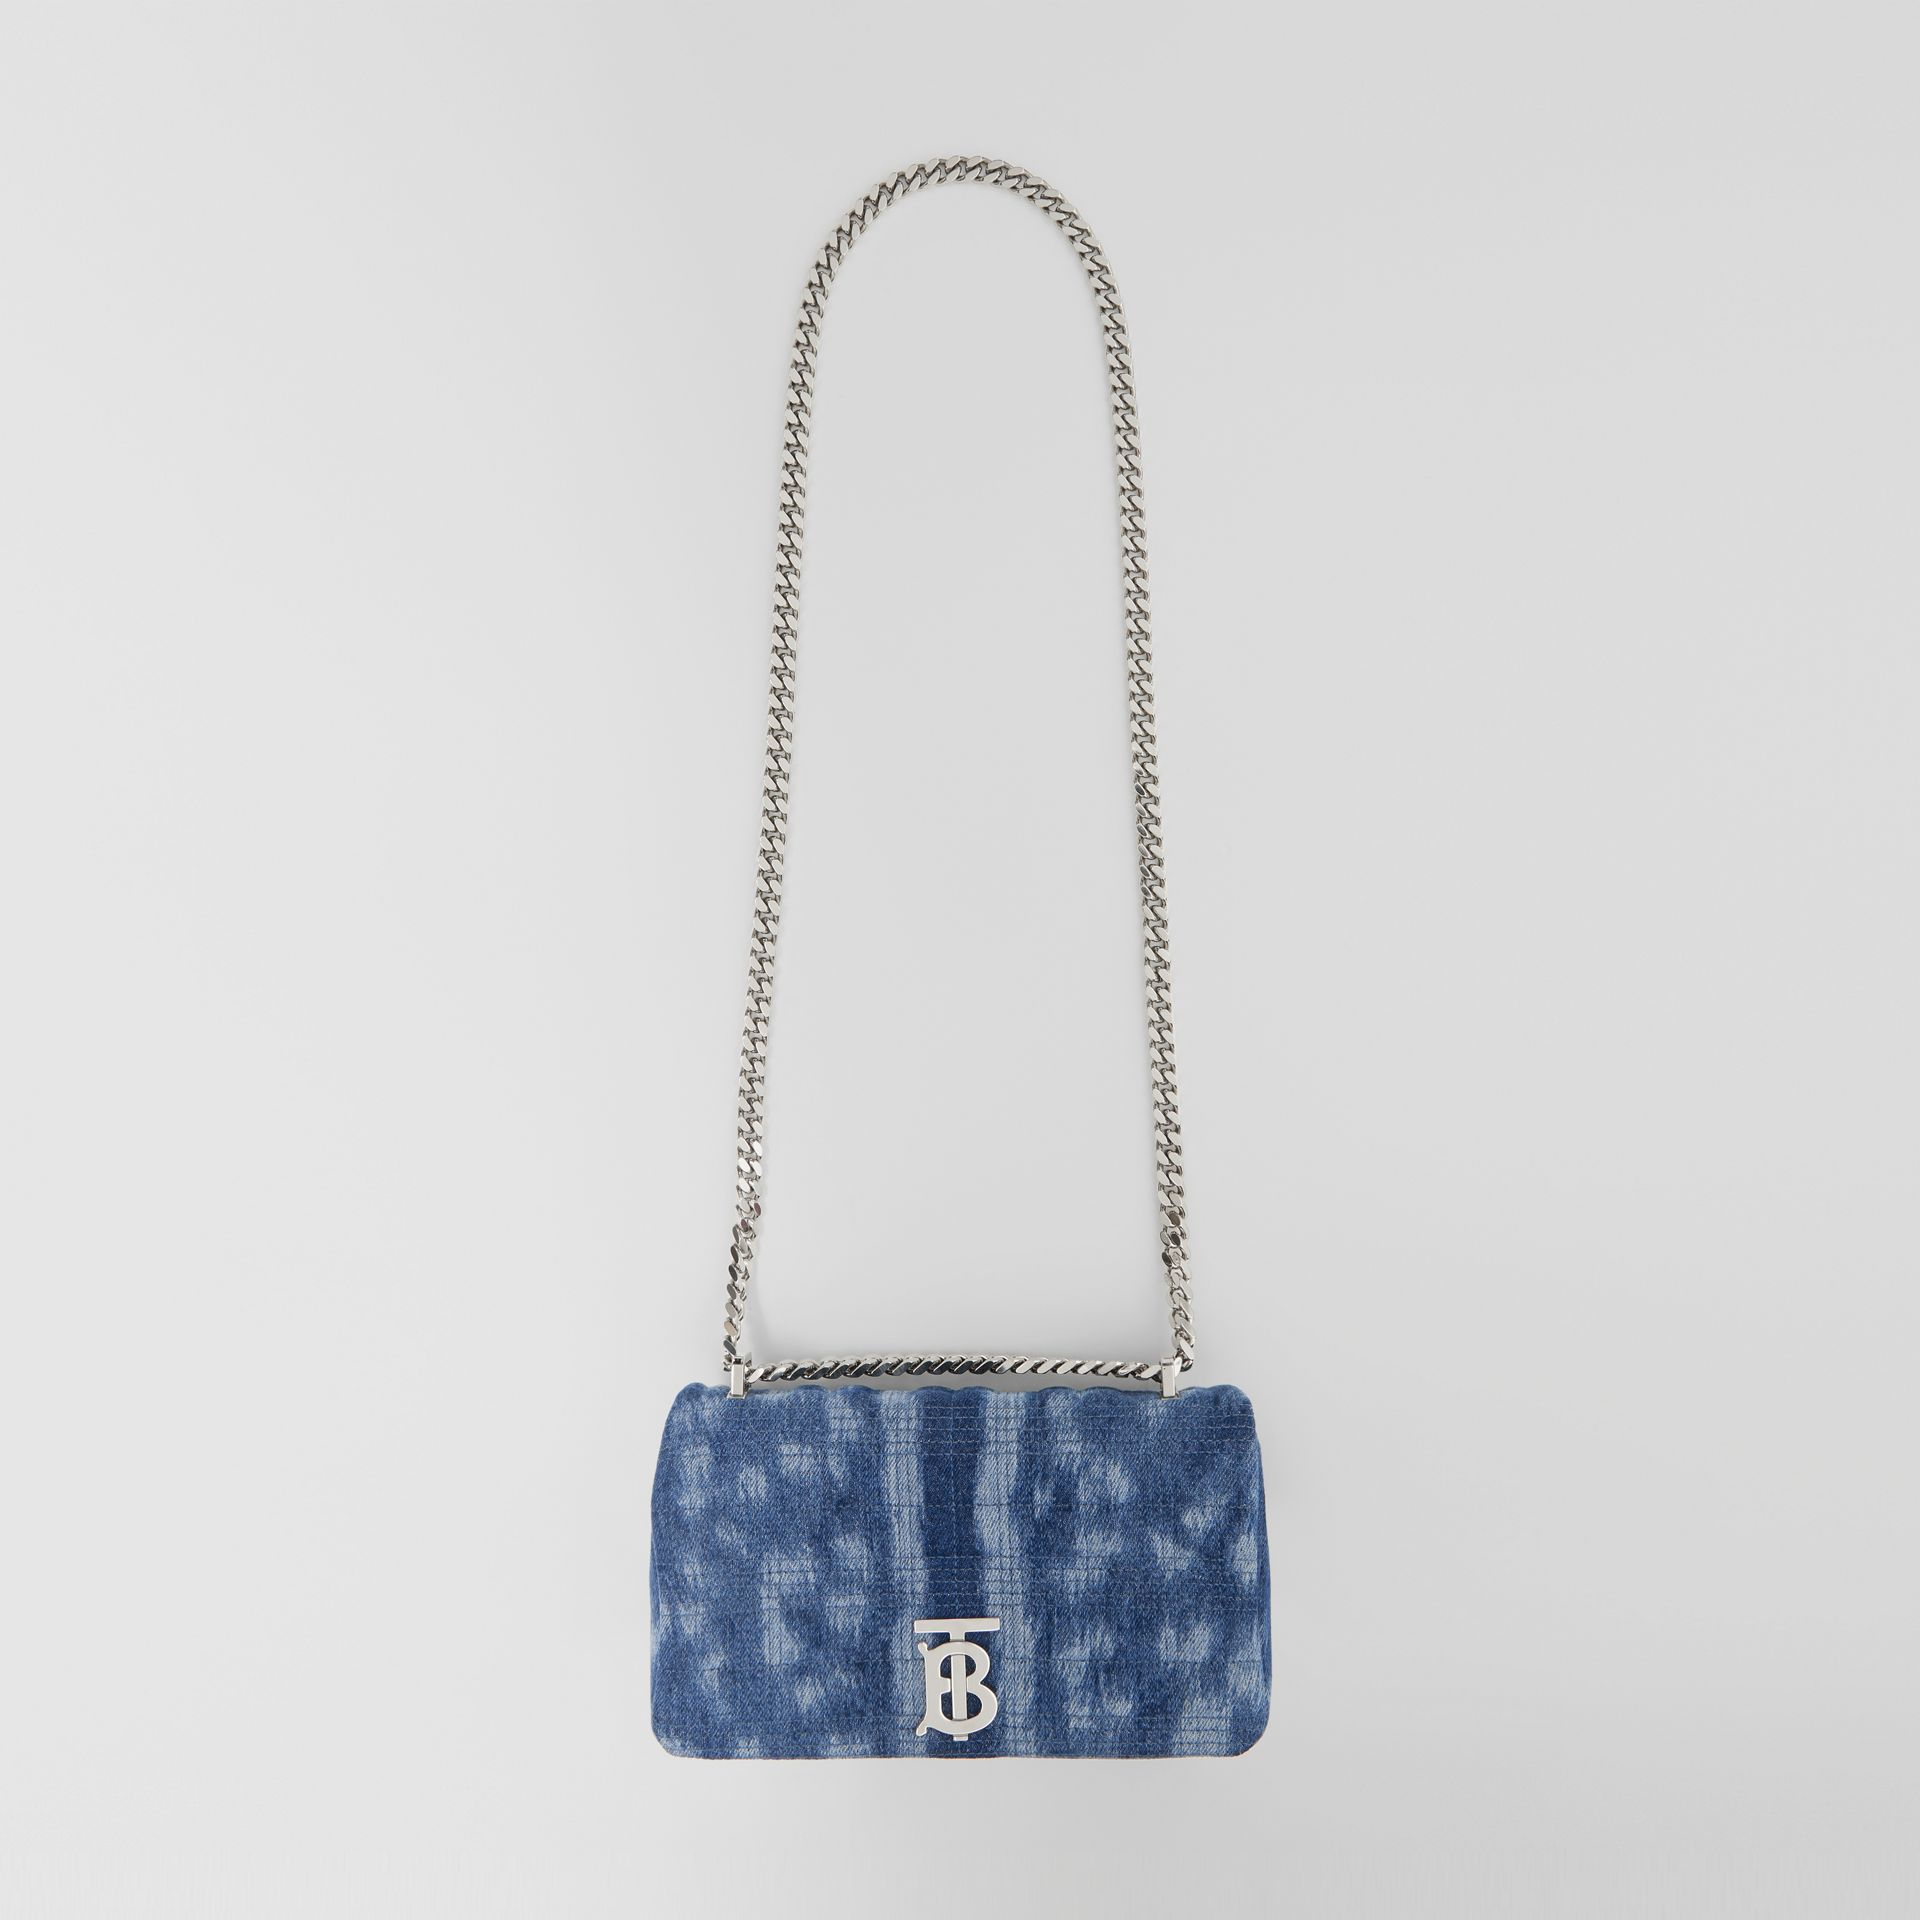 Small Quilted Denim Lola Bag in Blue - Women | Burberry - gallery image 3